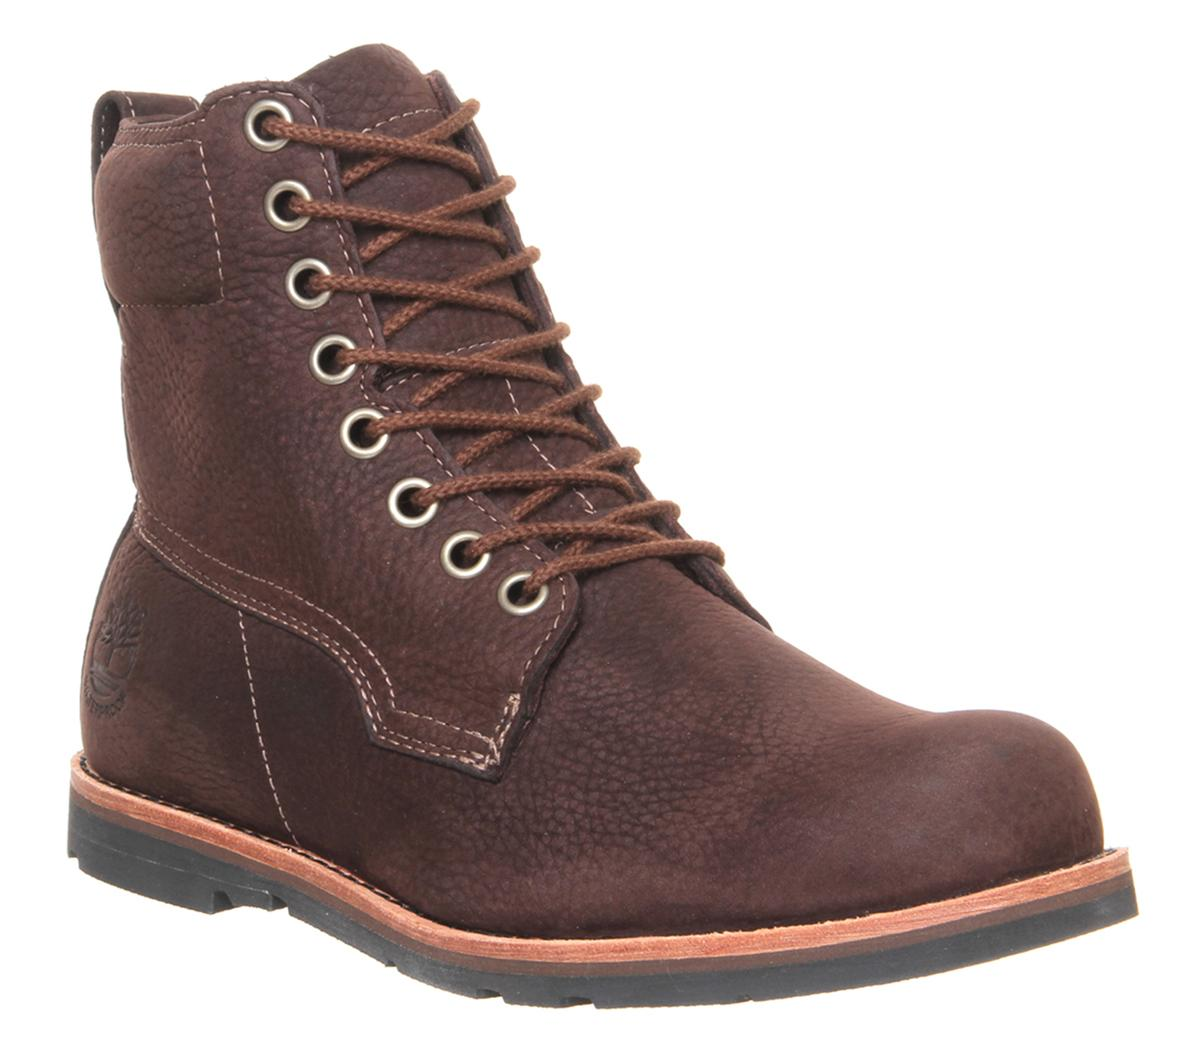 Rugged Lt 6 Inch boots